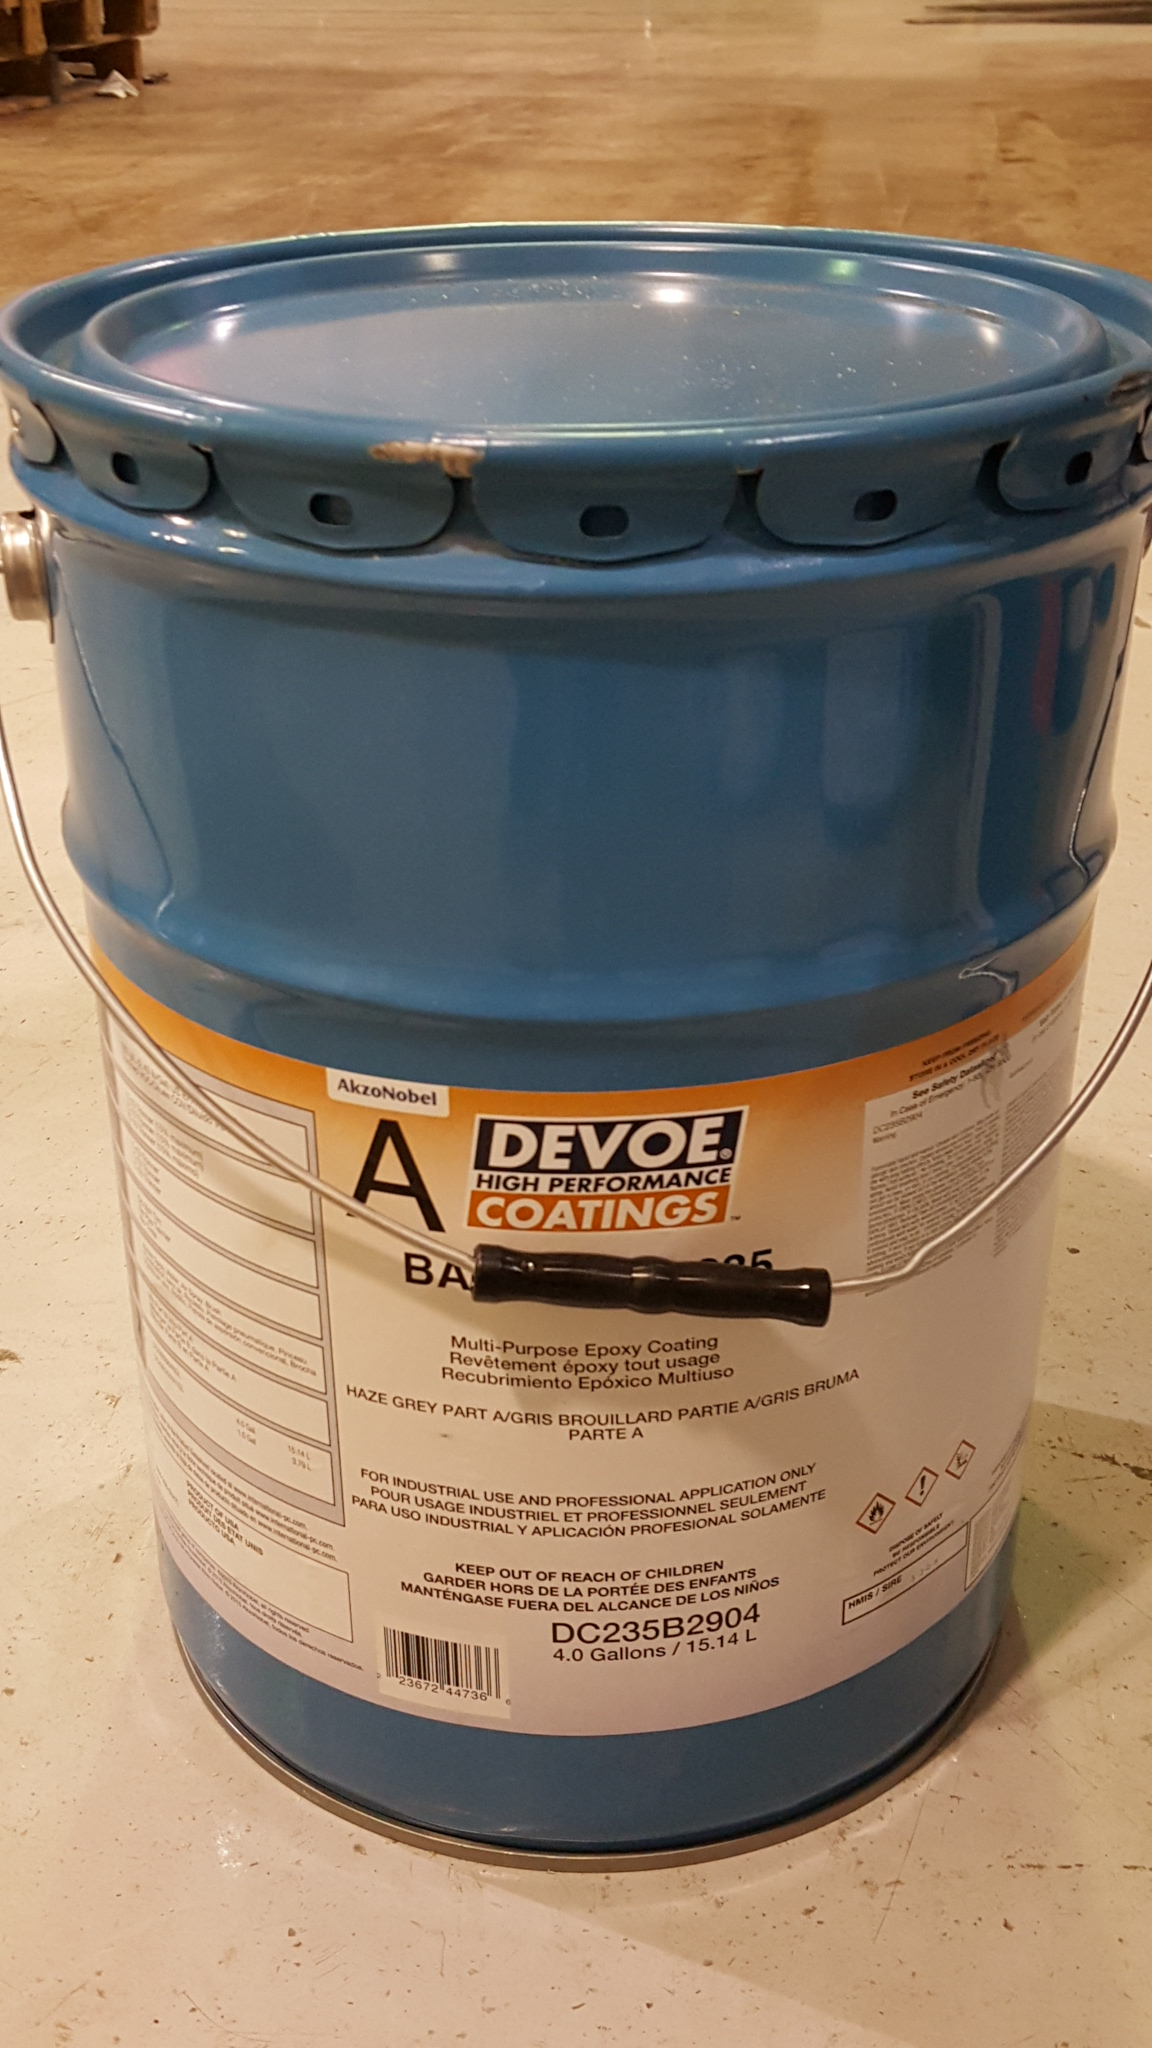 Devoe Bar-Rust 235, Surface Tolerant Epoxy, Haze Gray, 5-gal